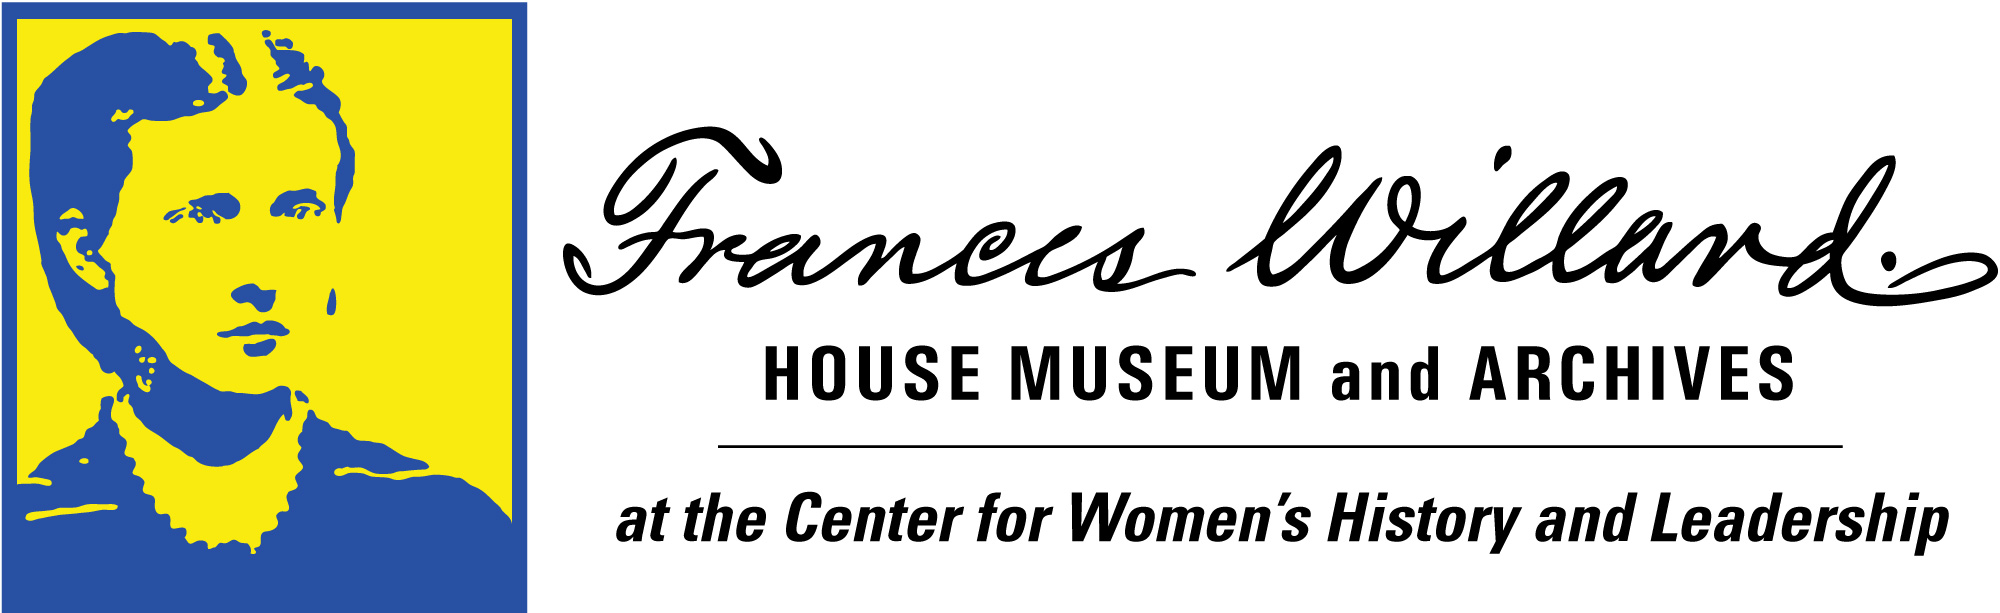 Frances Willard House Museum & Archives